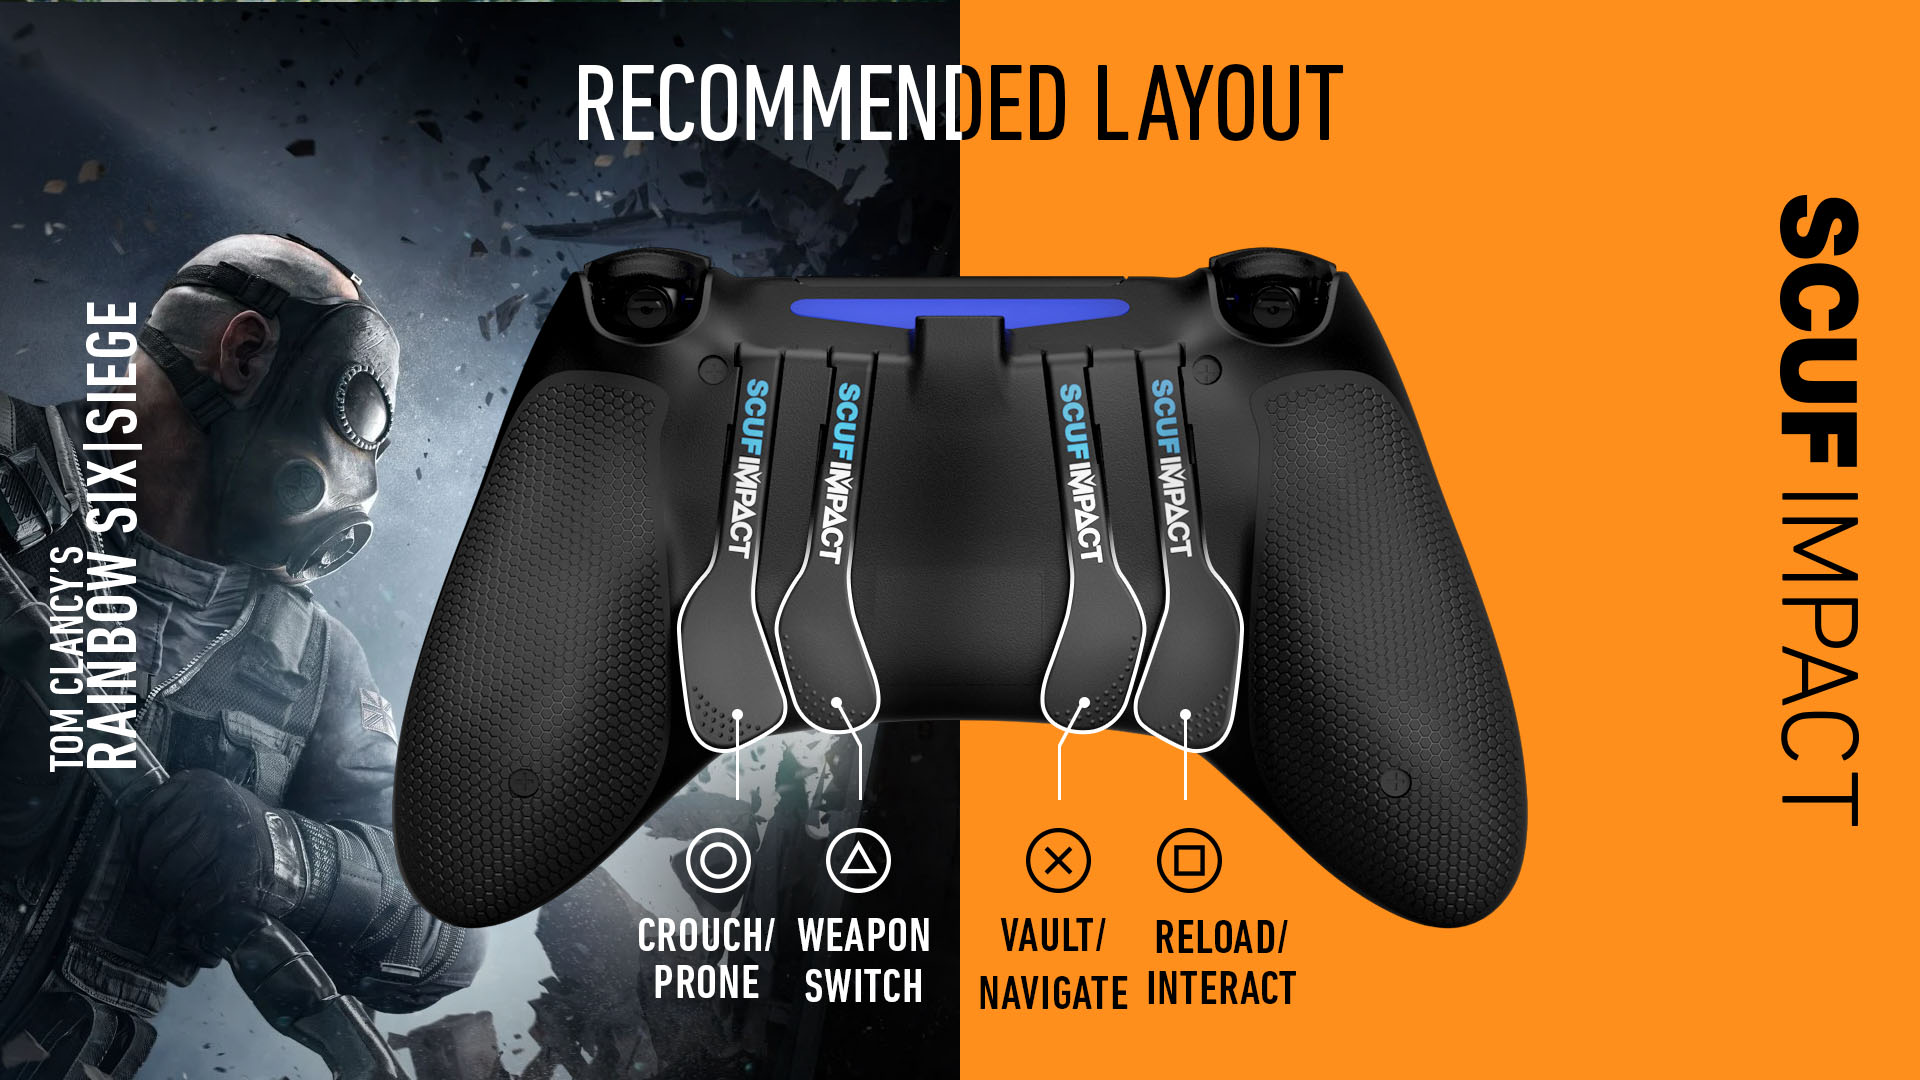 Rainbow 6 Siege PS4 Controller Setup SCUF IMPACT